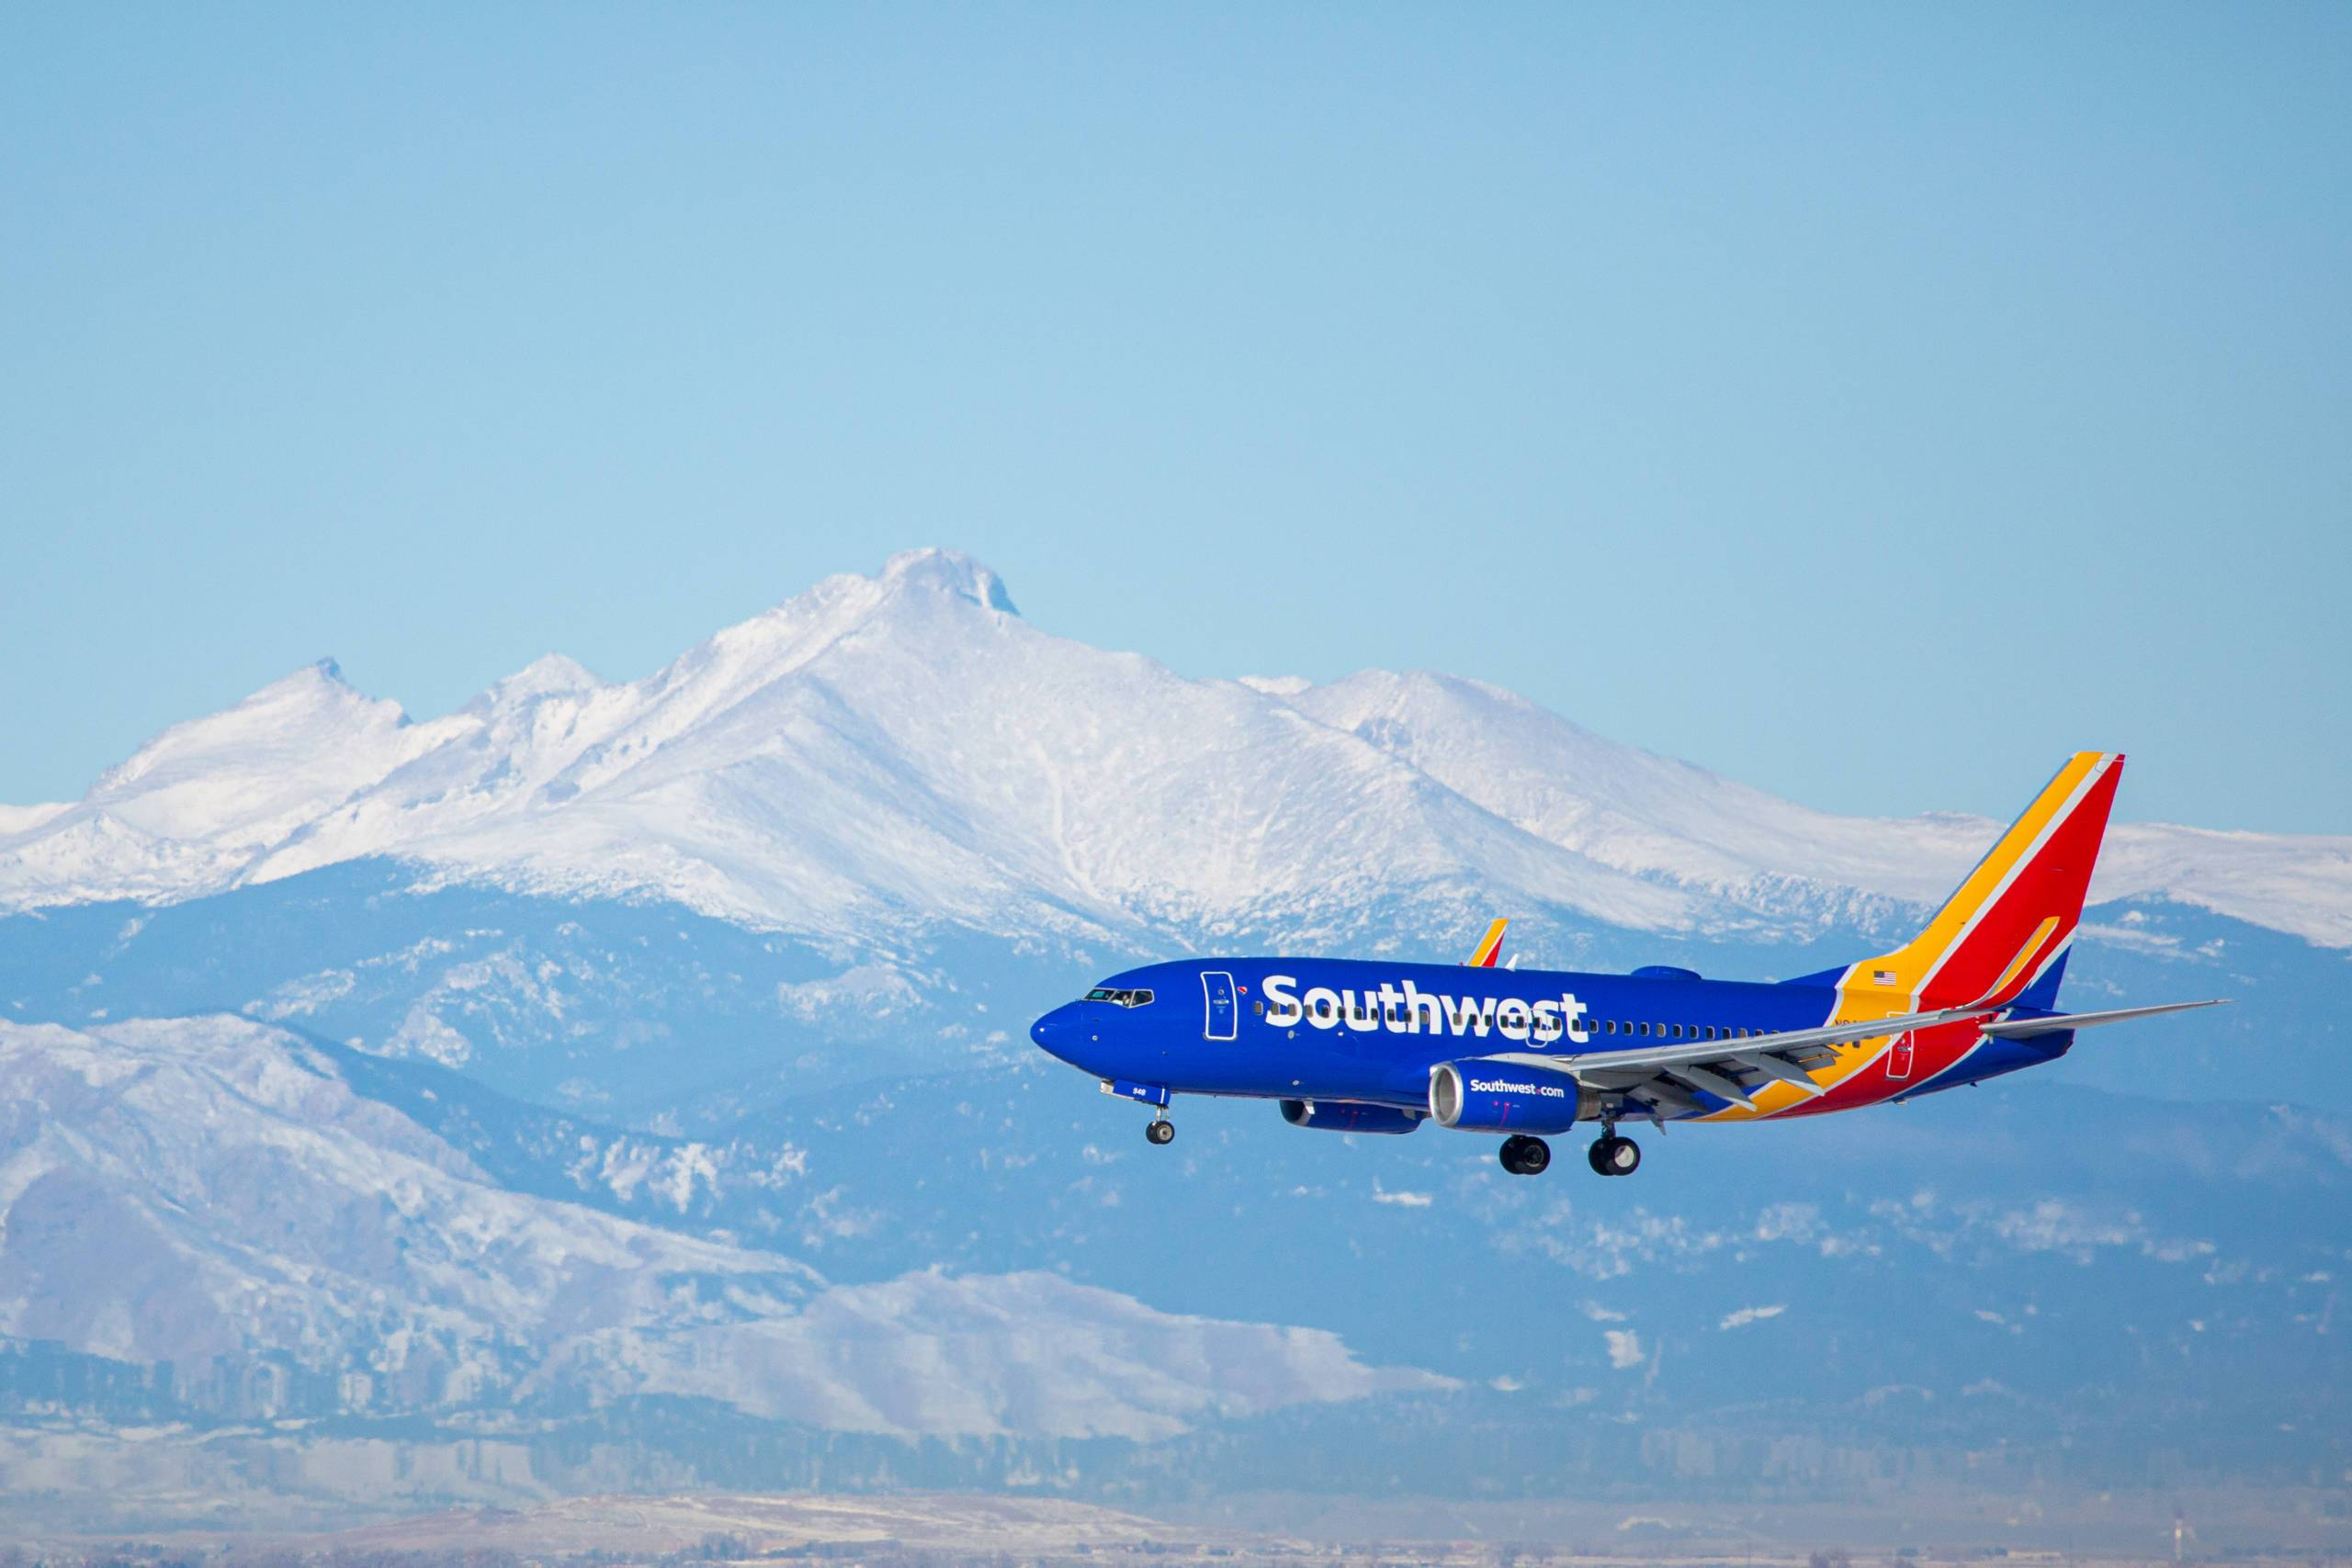 southwest airlines announces new service to steamboat springs colorado ski country usa southwest airlines announces new service to steamboat springs colorado ski country usa